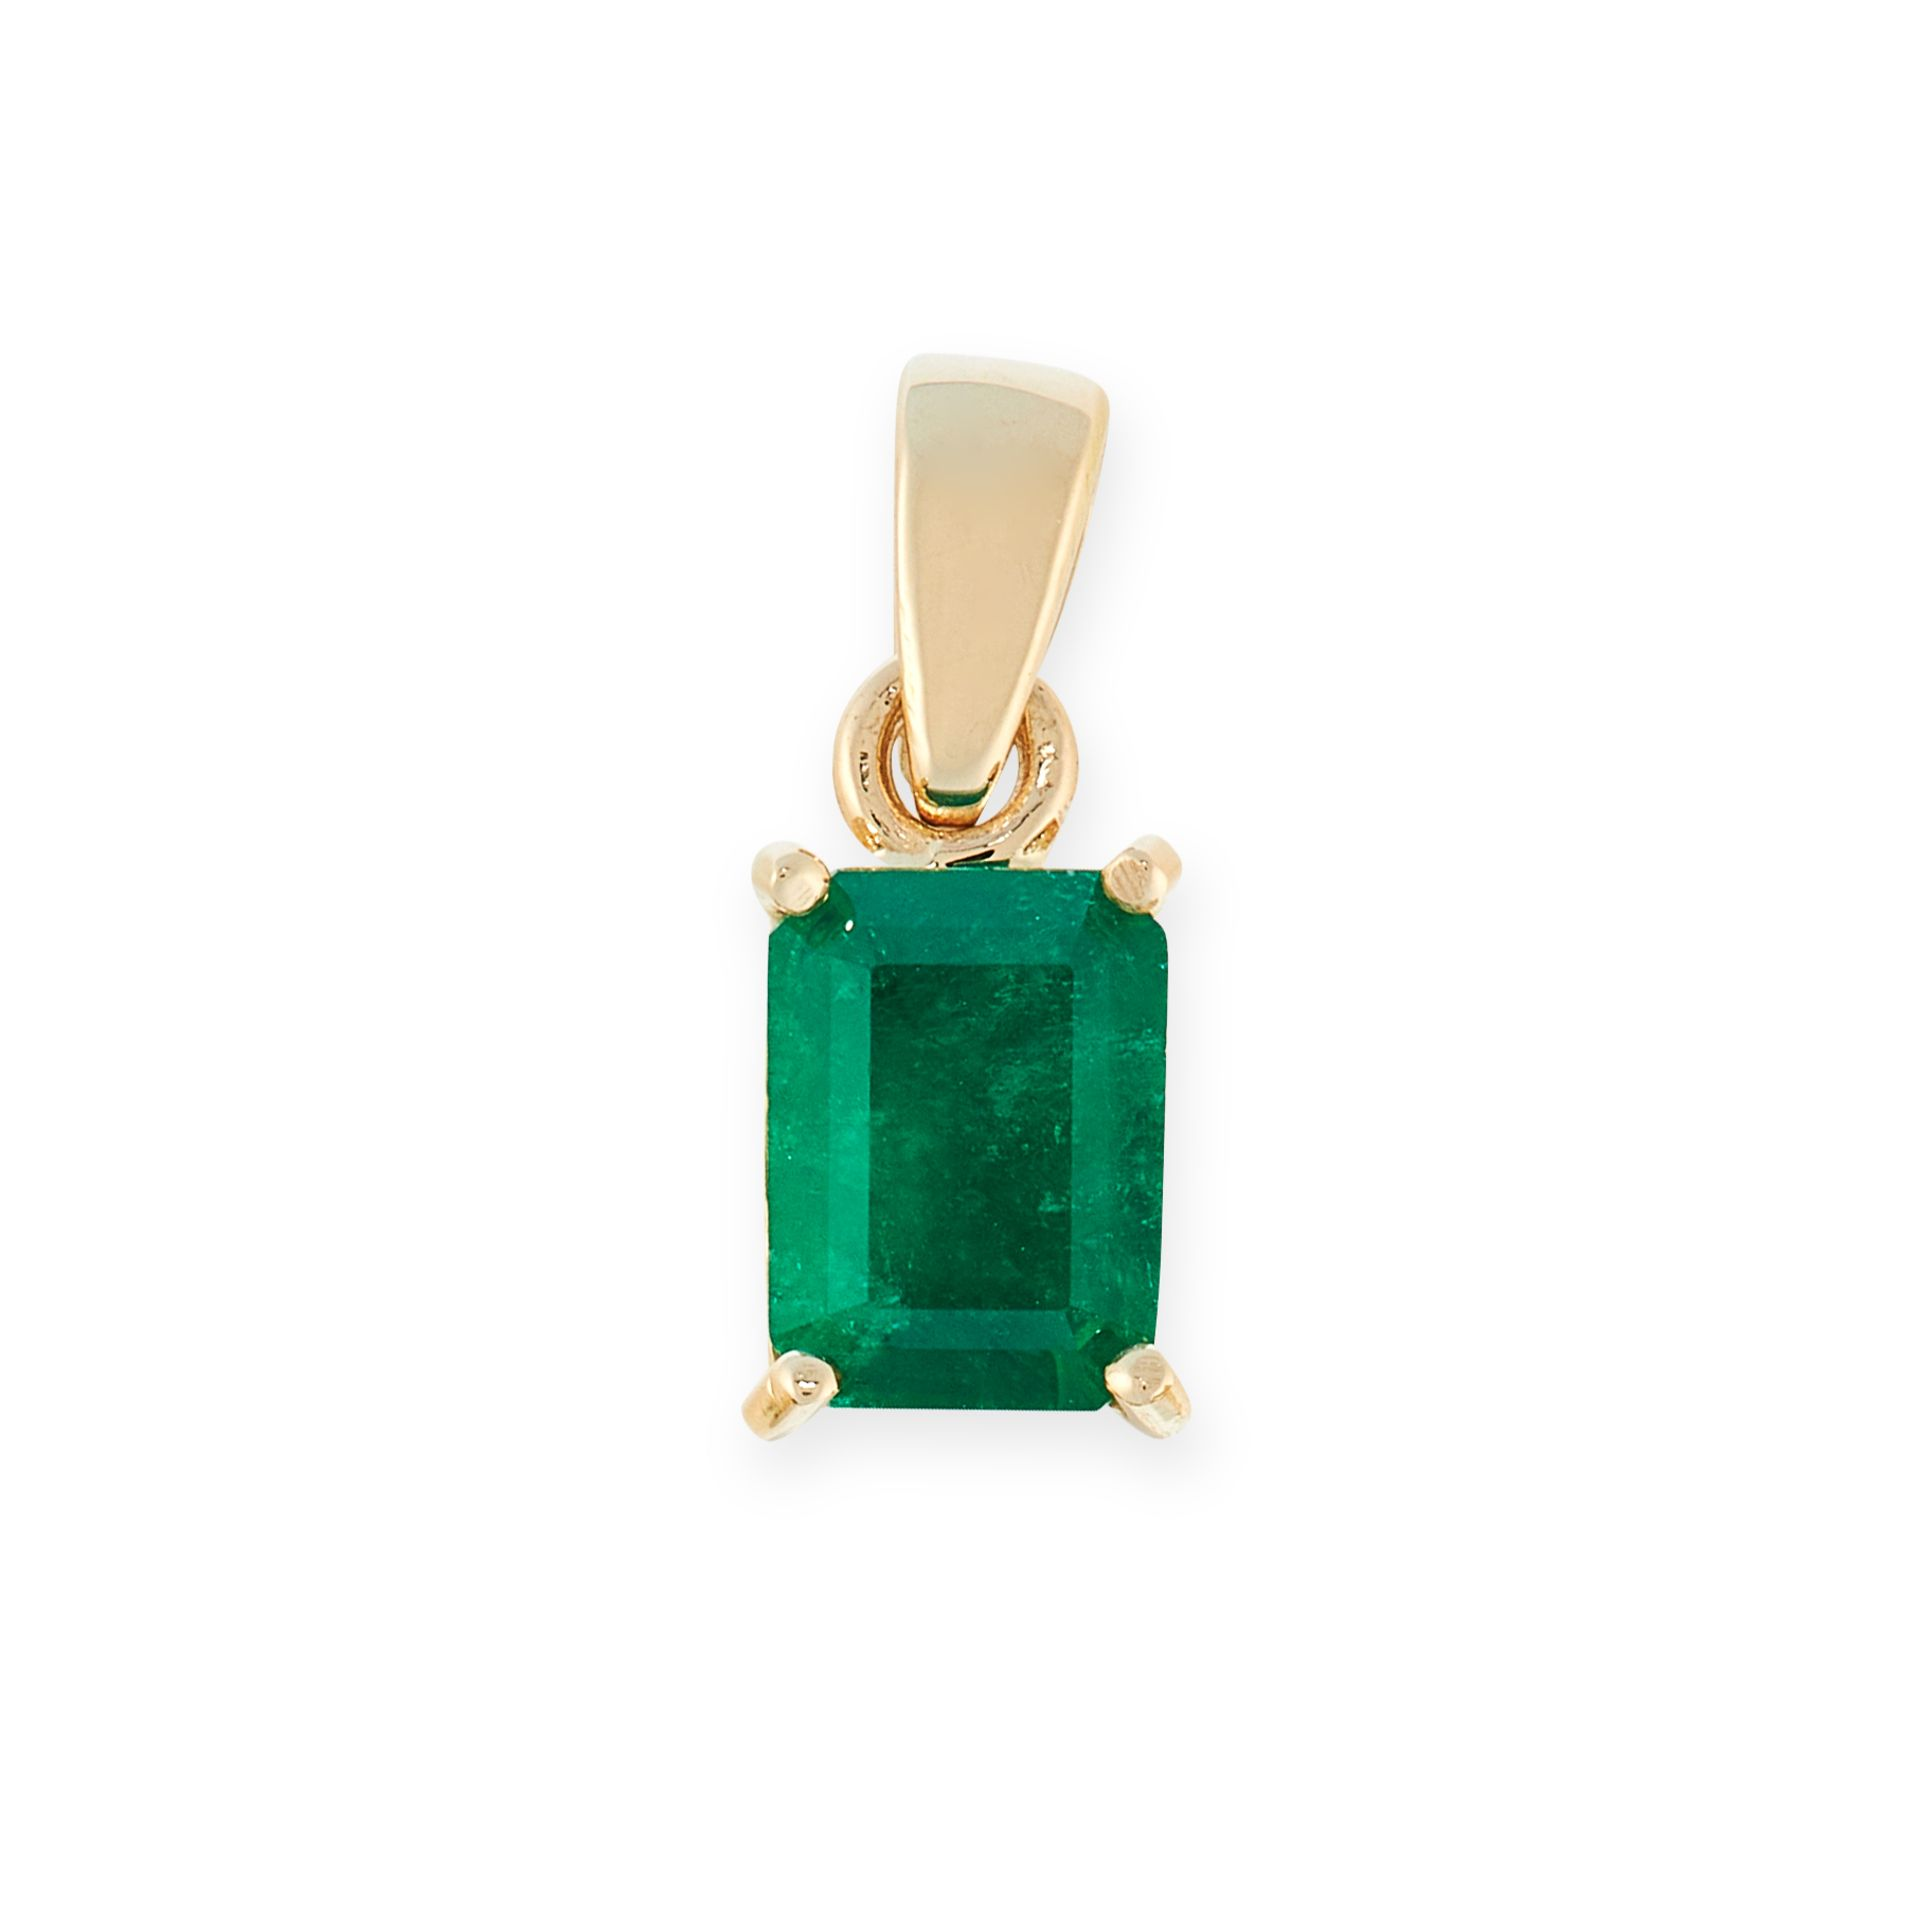 AN EMERALD PENDANT in 18ct yellow gold, set with an emerald cut emerald of 0.91 carats, stamped 18K,